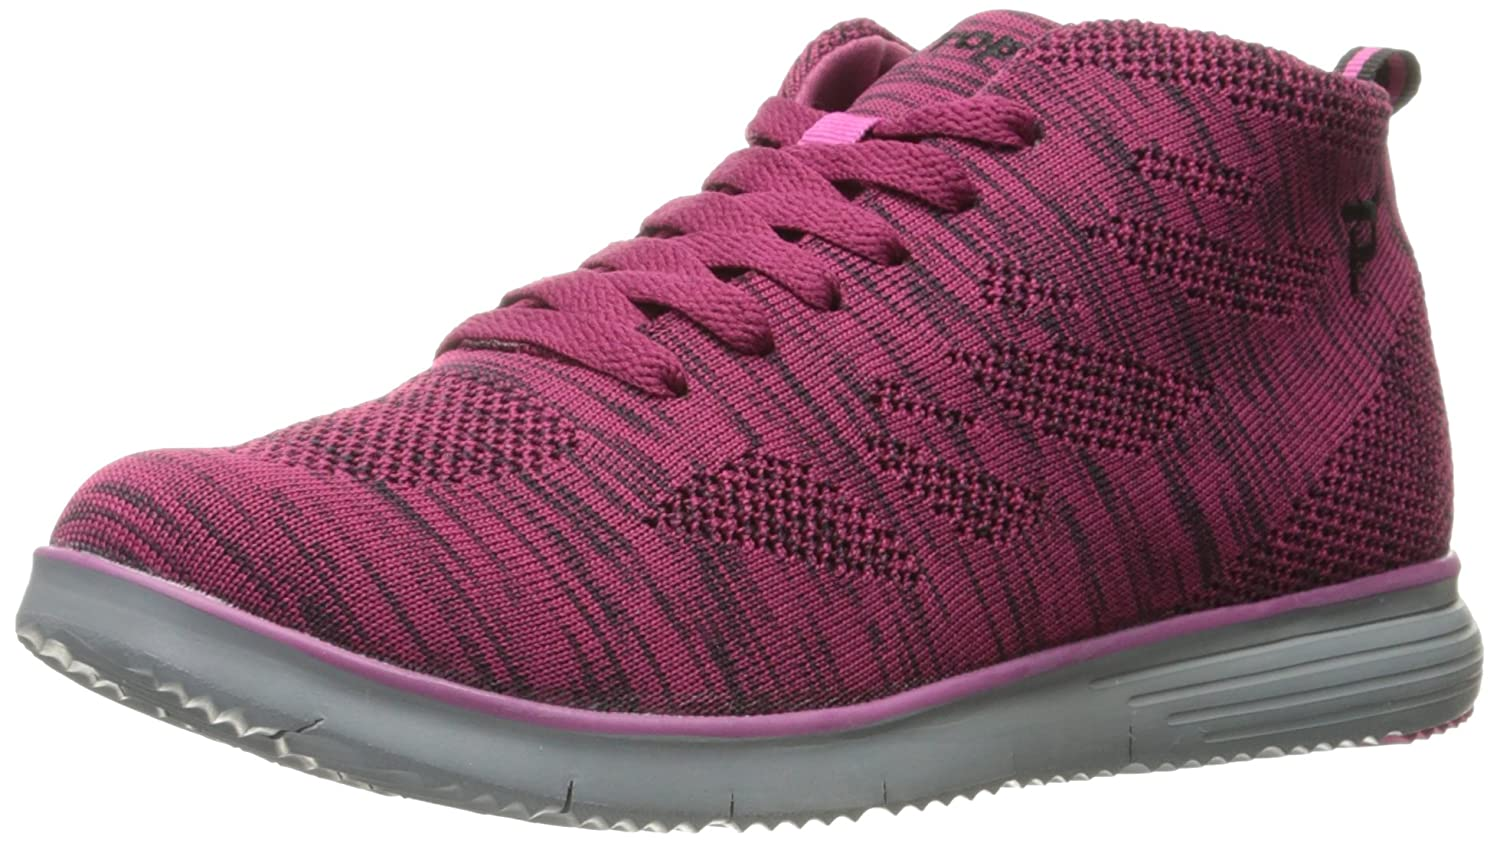 Propet Women's TravelFit Hi Walking Shoe B06XR8JDDY 11 4E US|Berry